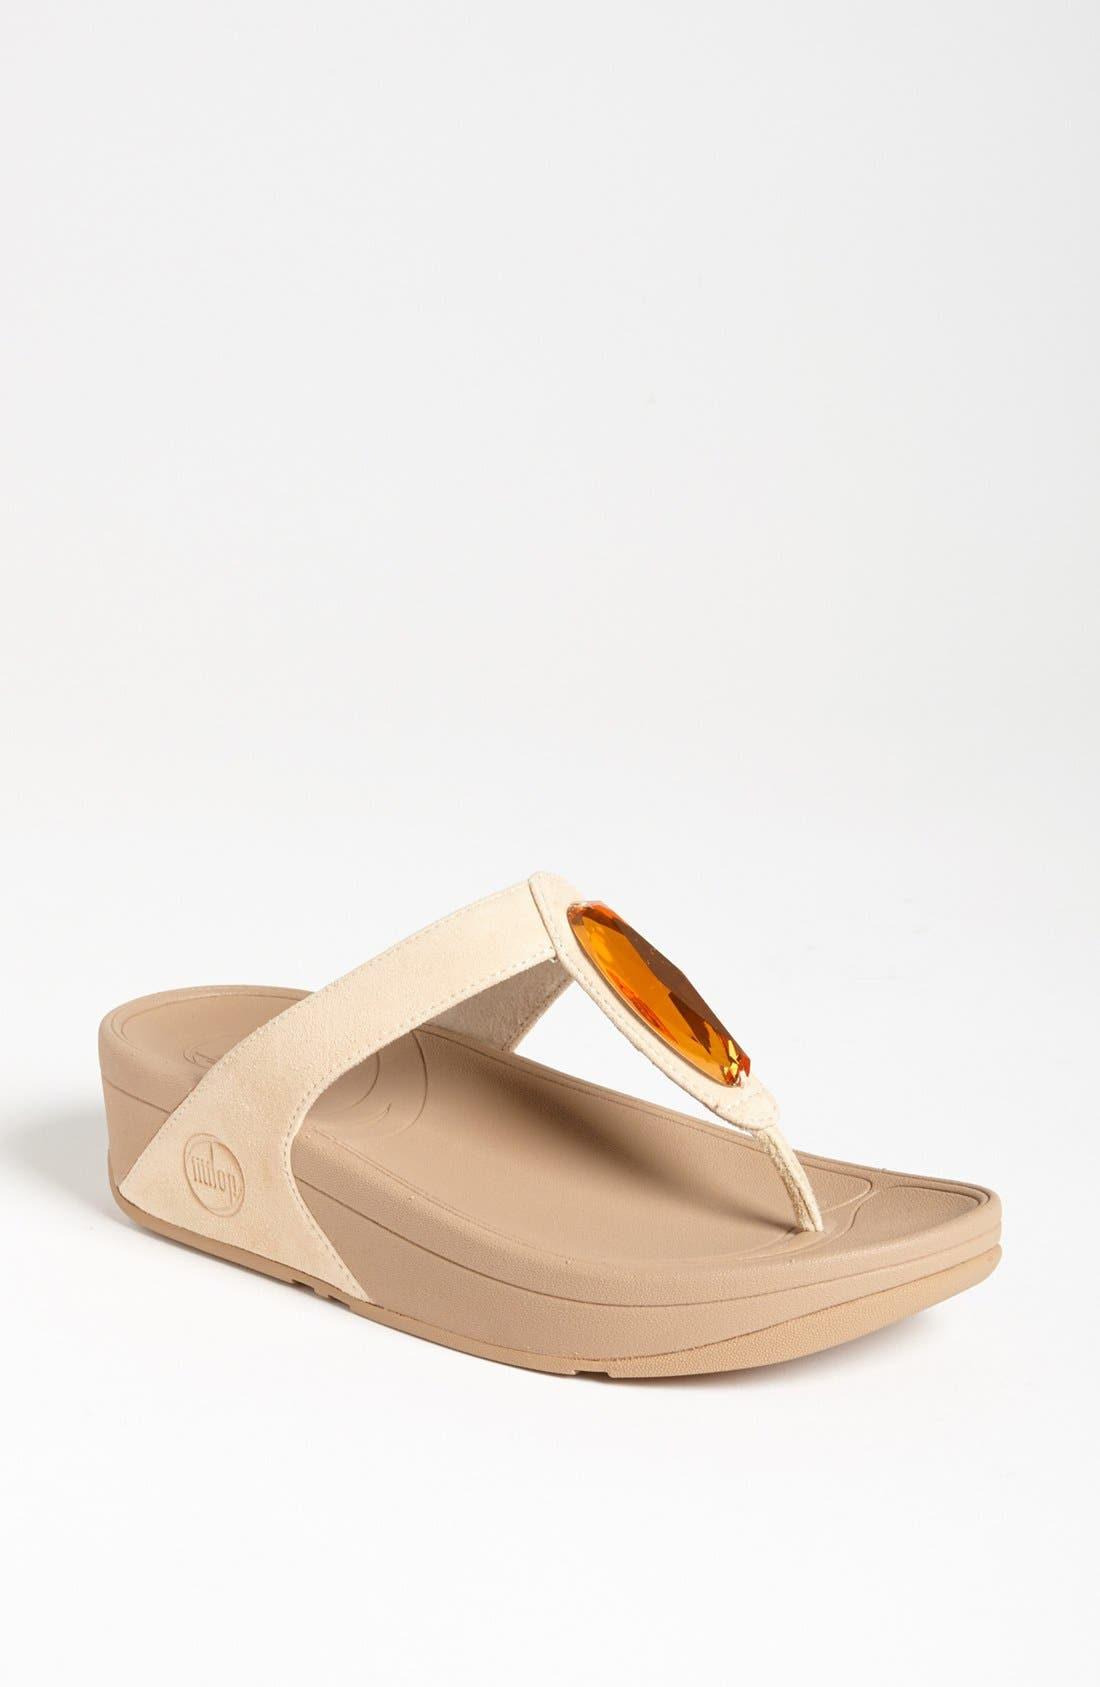 Alternate Image 1 Selected - FitFlop 'Chada™' Sandal